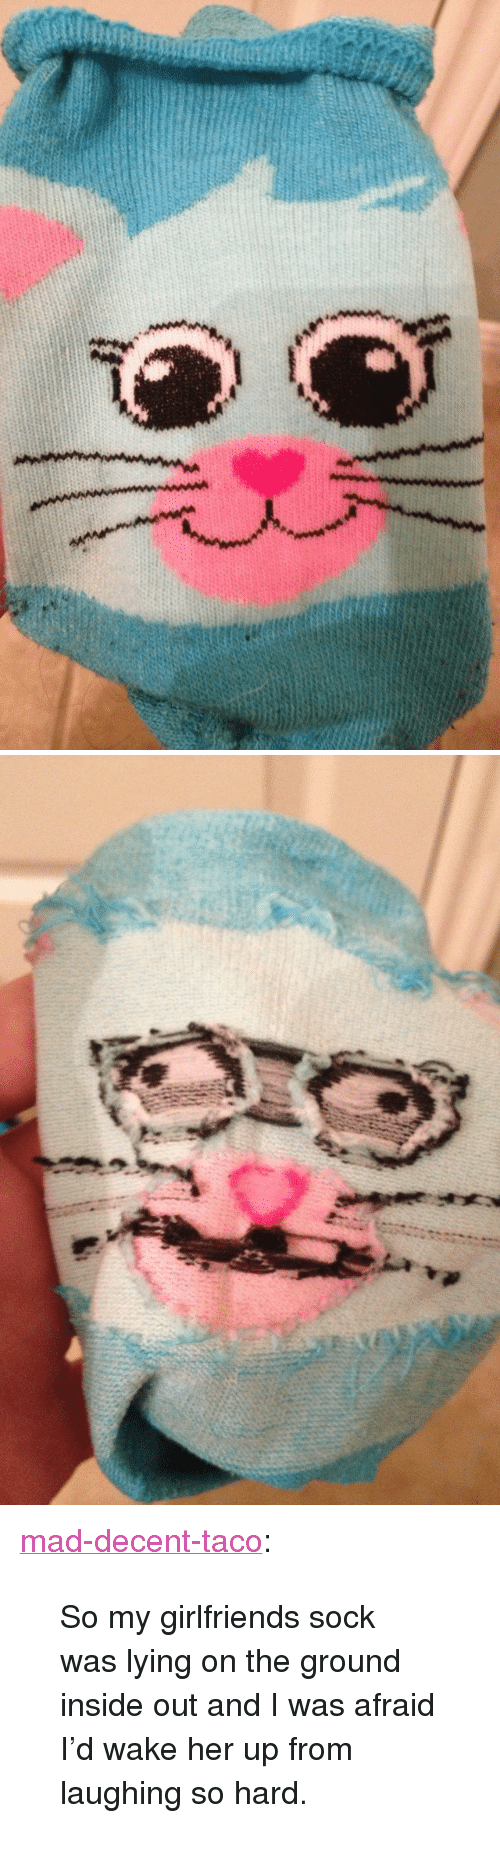 """Inside Out, Target, and Tumblr: <p><a class=""""tumblr_blog"""" href=""""http://mad-decent-taco.tumblr.com/post/67327623359/so-my-girlfriends-sock-was-lying-on-the-ground"""" target=""""_blank"""">mad-decent-taco</a>:</p> <blockquote> <p>So my girlfriends sock was lying on the ground inside out and I was afraid I'd wake her up from laughing so hard.</p> </blockquote>"""